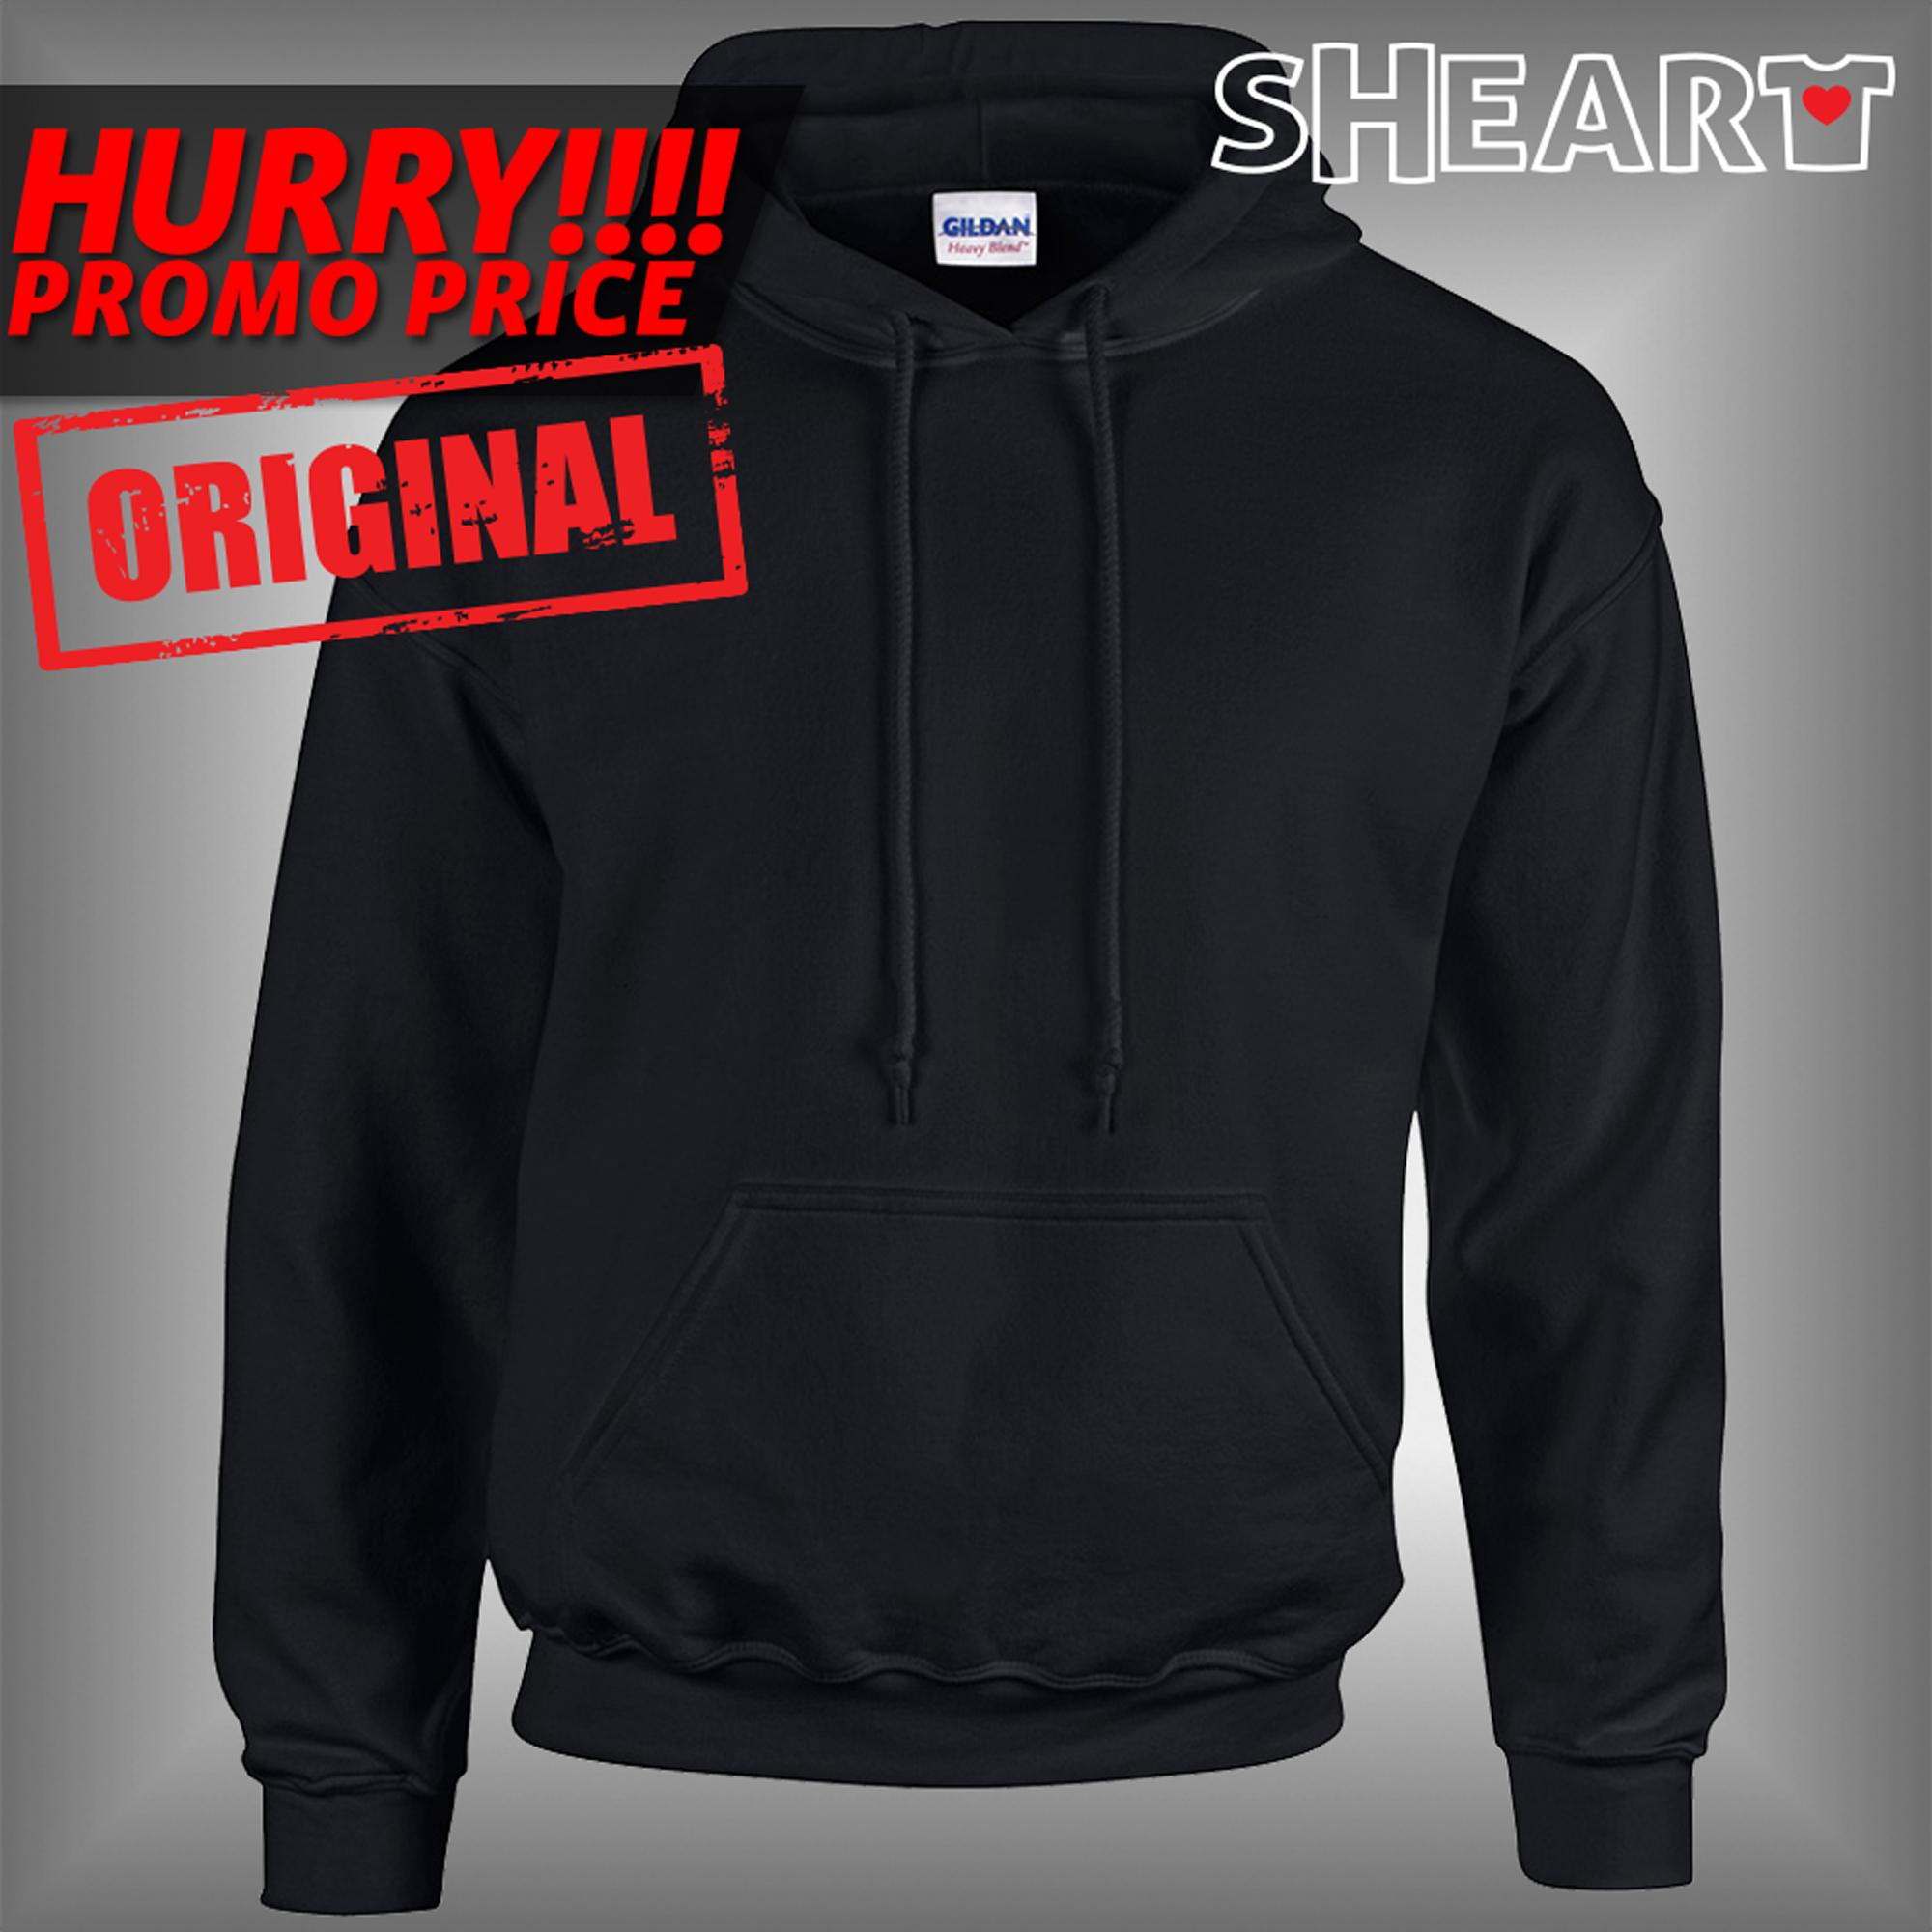 ccfde04b6cdc Mens Hoodies for sale - Hoodie Jackets for Men online brands